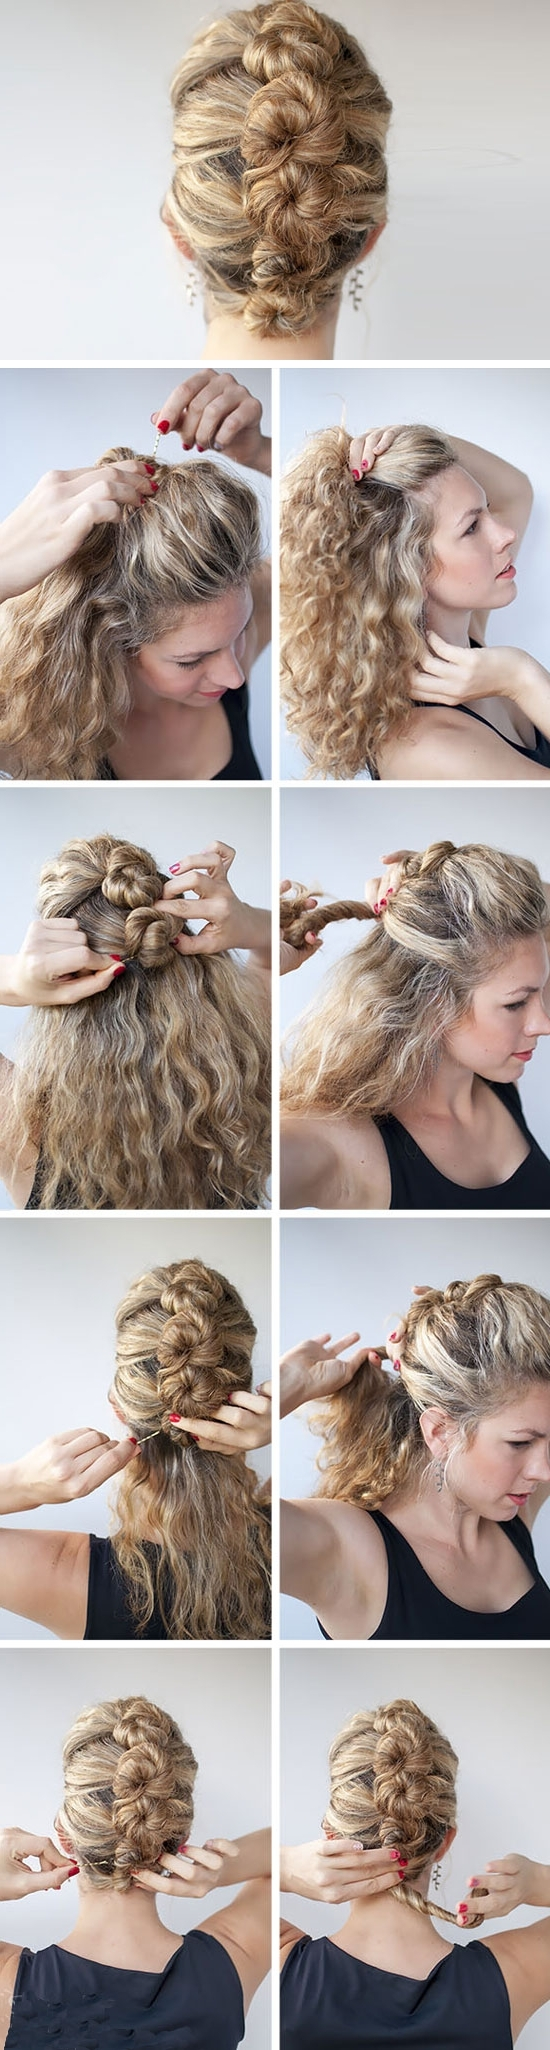 Easy Diy Wedding Hairstyles For Long Hair Regarding Famous Diy Wedding Hairstyles For Long Hair (View 11 of 15)